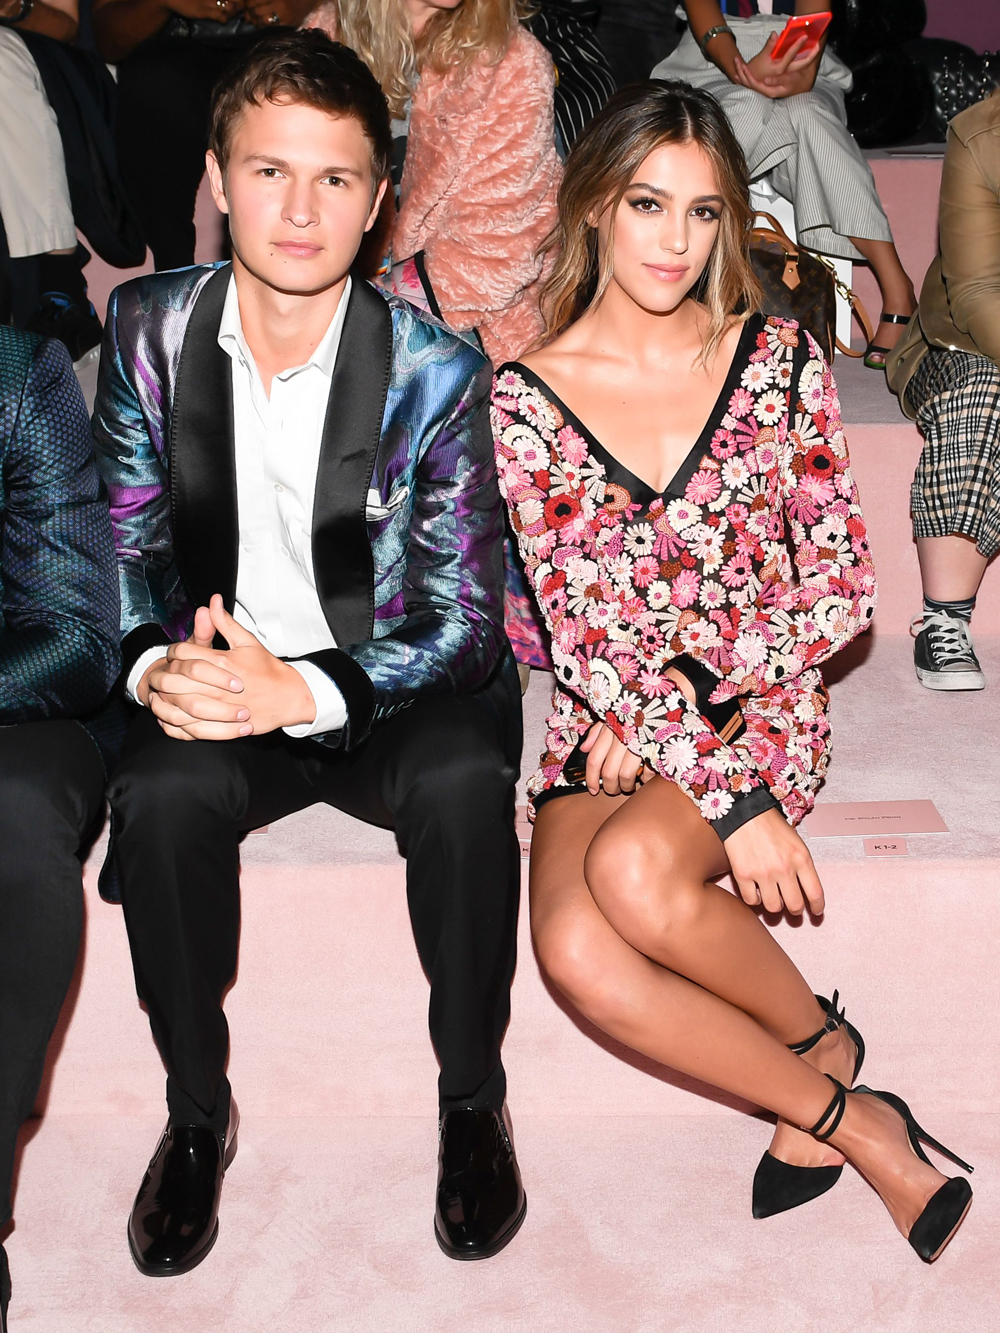 Ansel Elgort and Sistine Stallone